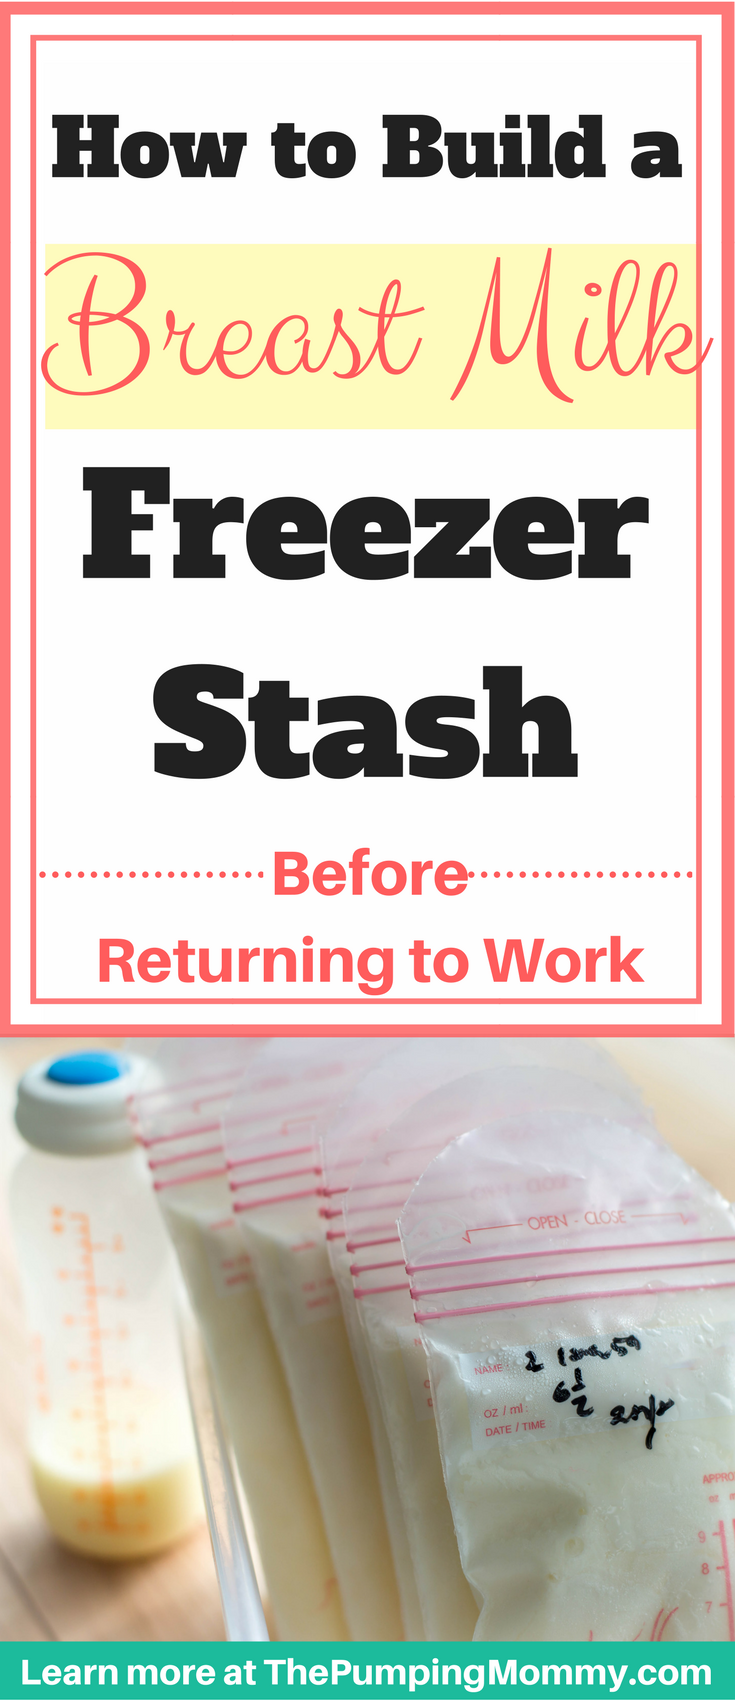 How-to-build-a-freezer-stash-of-breast-milk